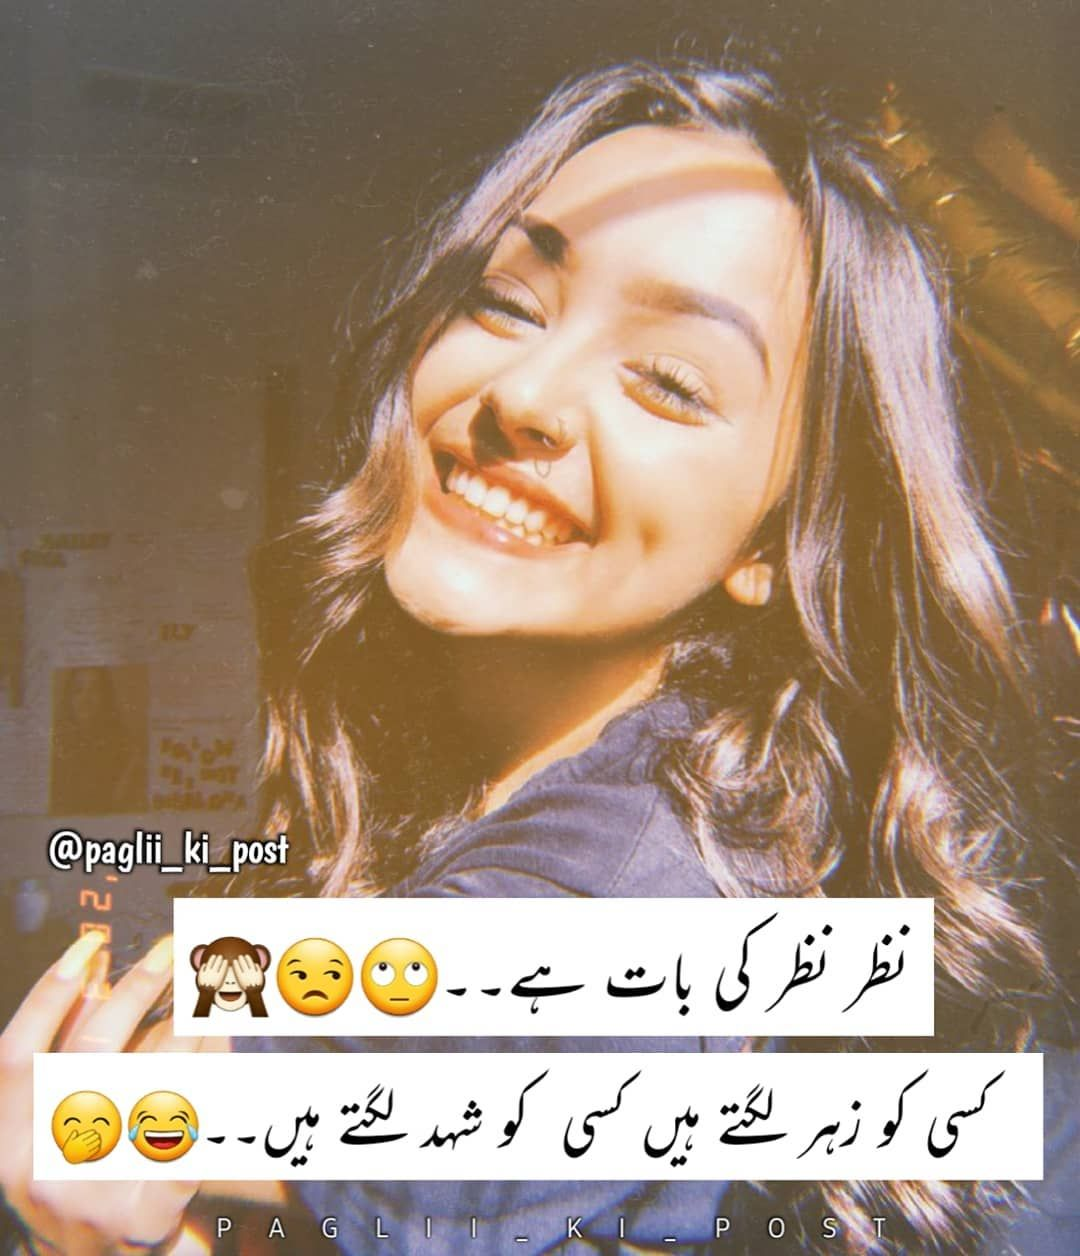 5 089 Likes 113 Comments Mohtarmaa Paglii Ki Post On Instagram Follow Funny Girl Quotes Urdu Funny Quotes Funny Quotes In Urdu